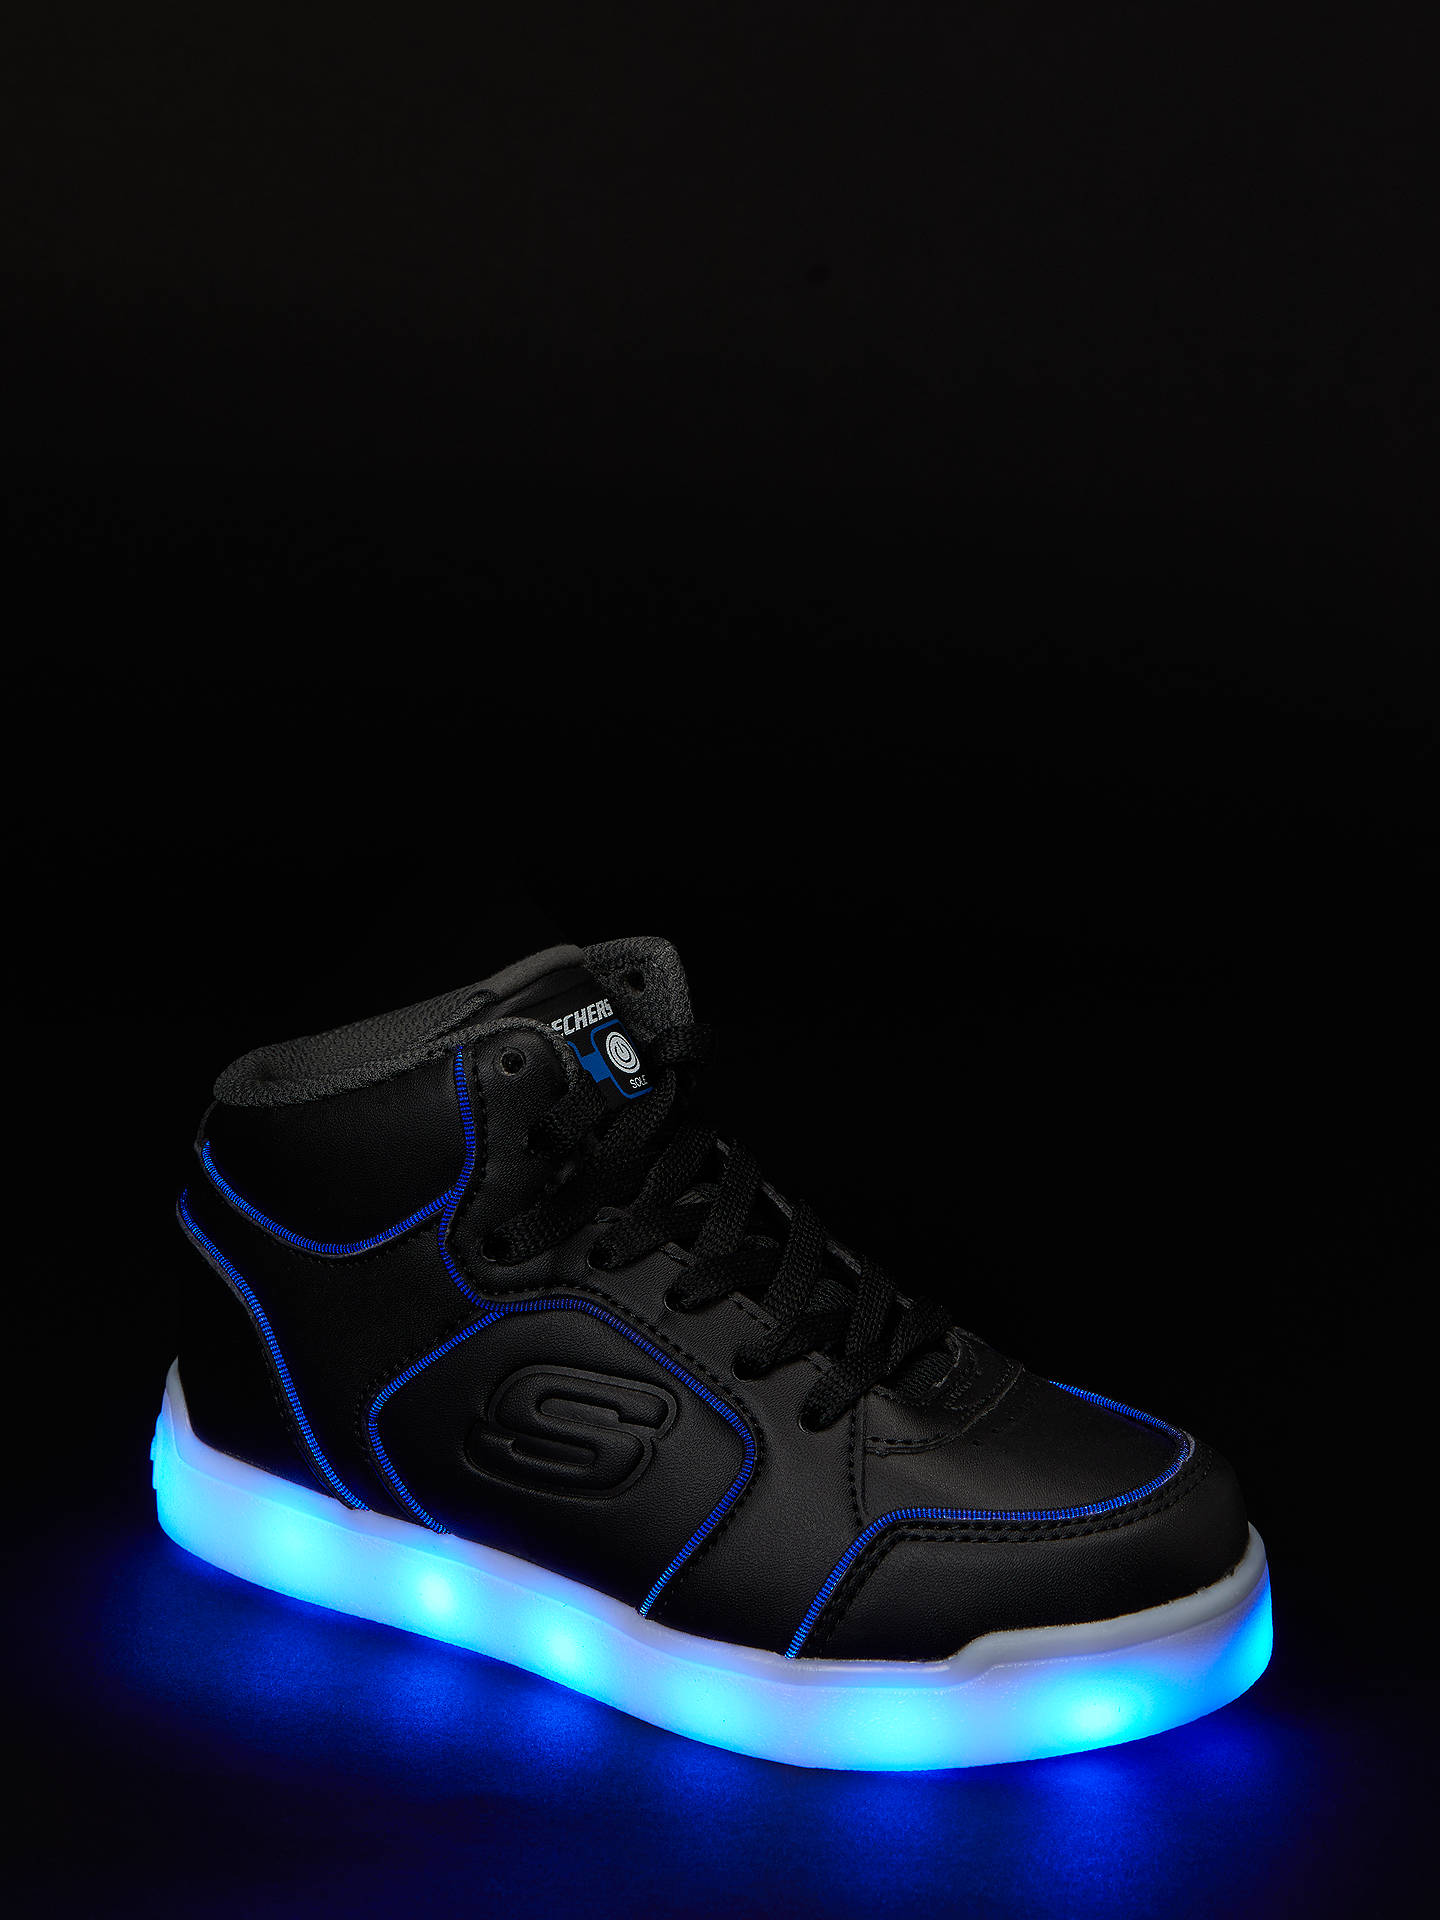 Buy Skechers Children's S Lights Energy Lights Gusto Flash Trainers, Black, 30 Online at johnlewis.com